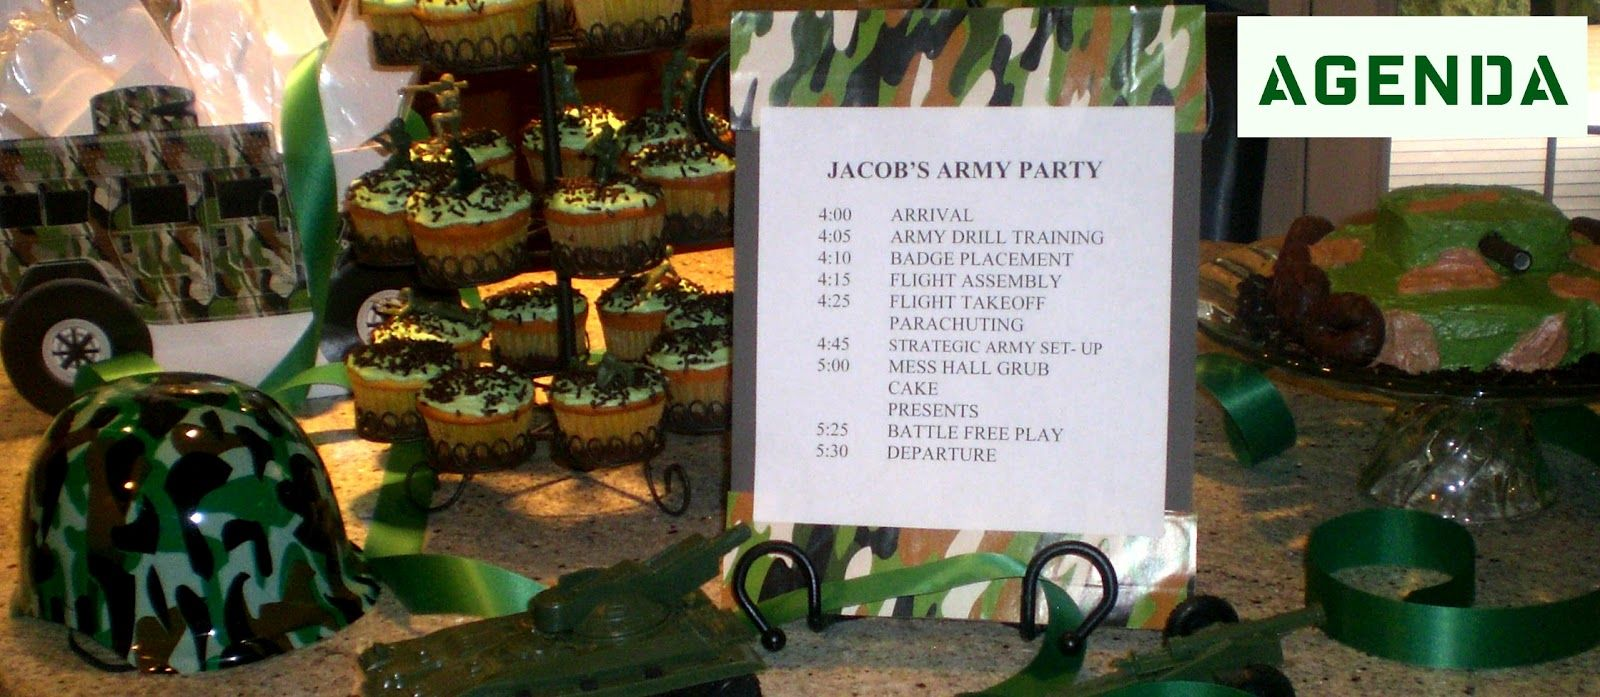 free printable camouflage birthday party invitations%0A Army party agenda    army drill training  badge placement  flight assembly   mess